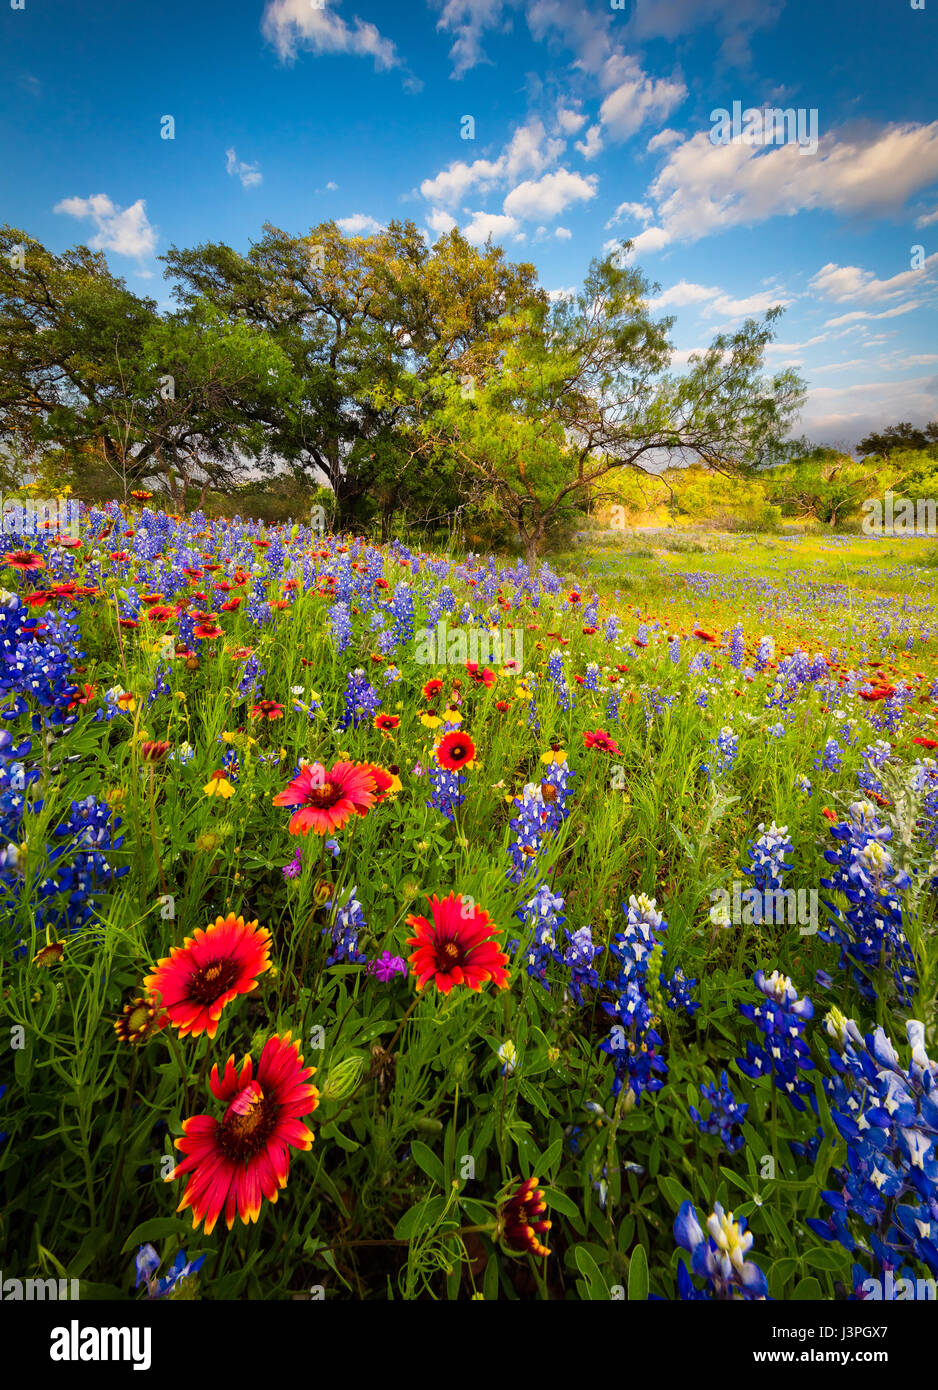 Bluebonnets and Indian Blanket along country road in the Texas Hill Country around Llano. Lupinus texensis, the - Stock Image